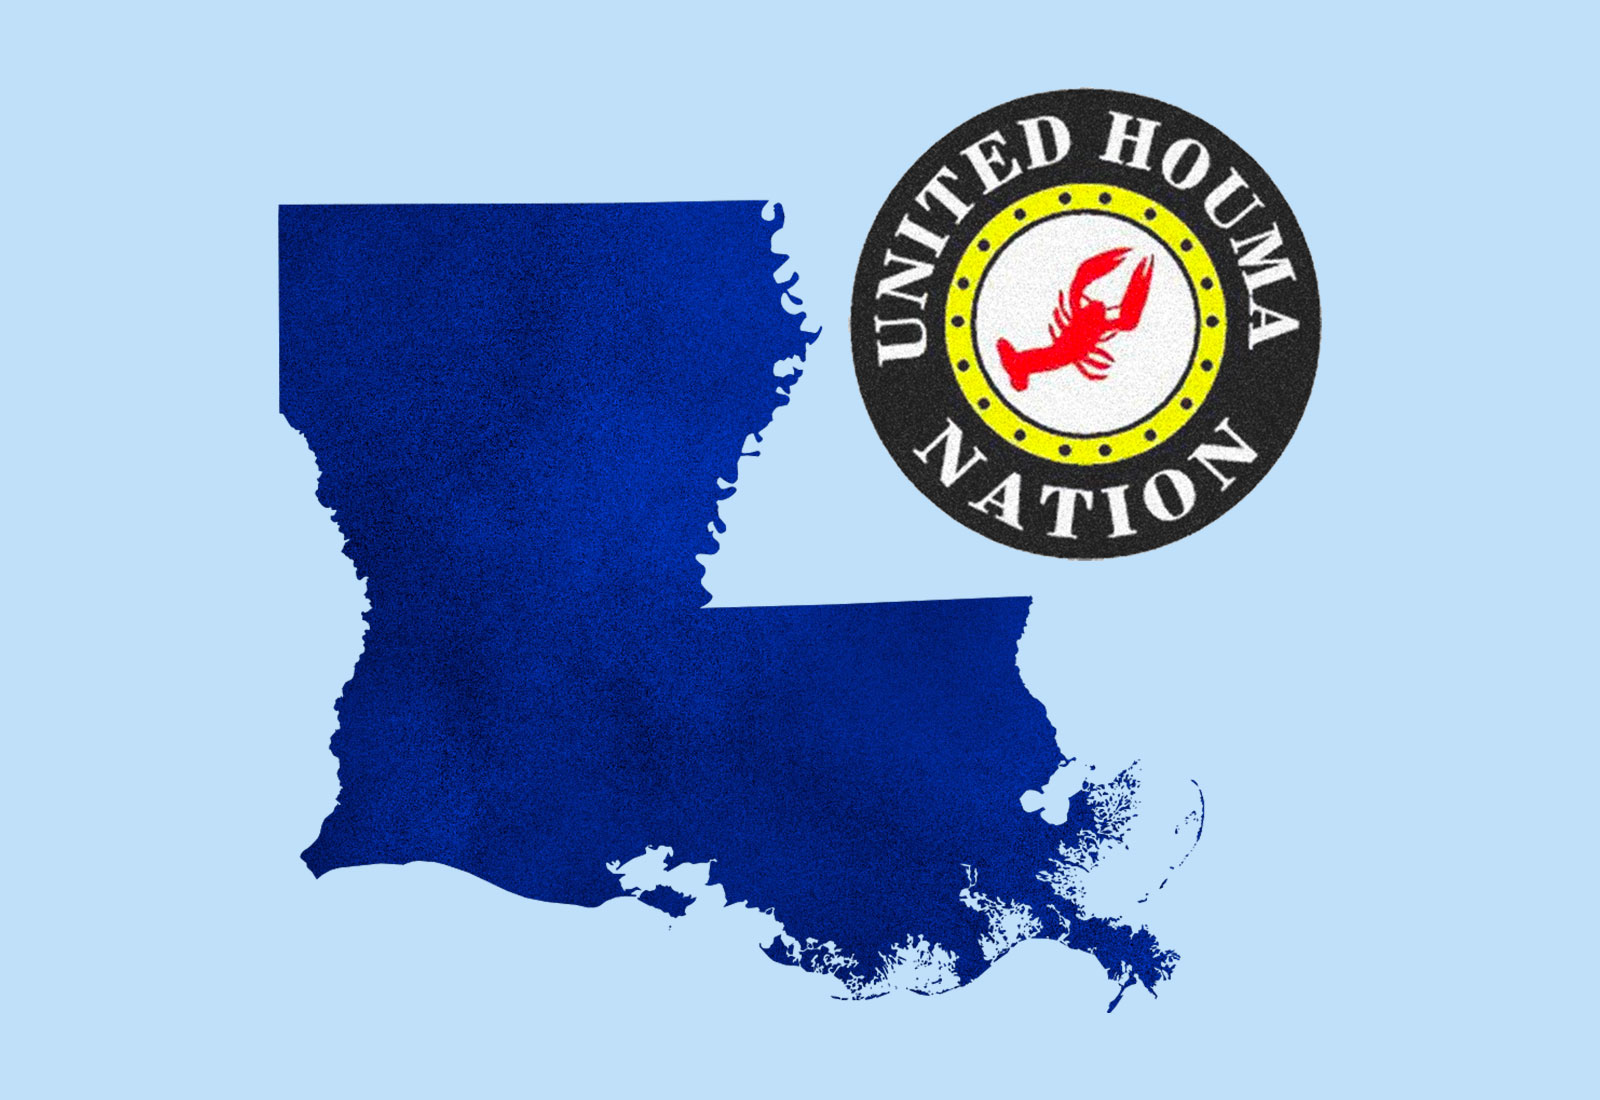 Collage: Silhouette of Louisiana state and the logo of the United Houma Nation